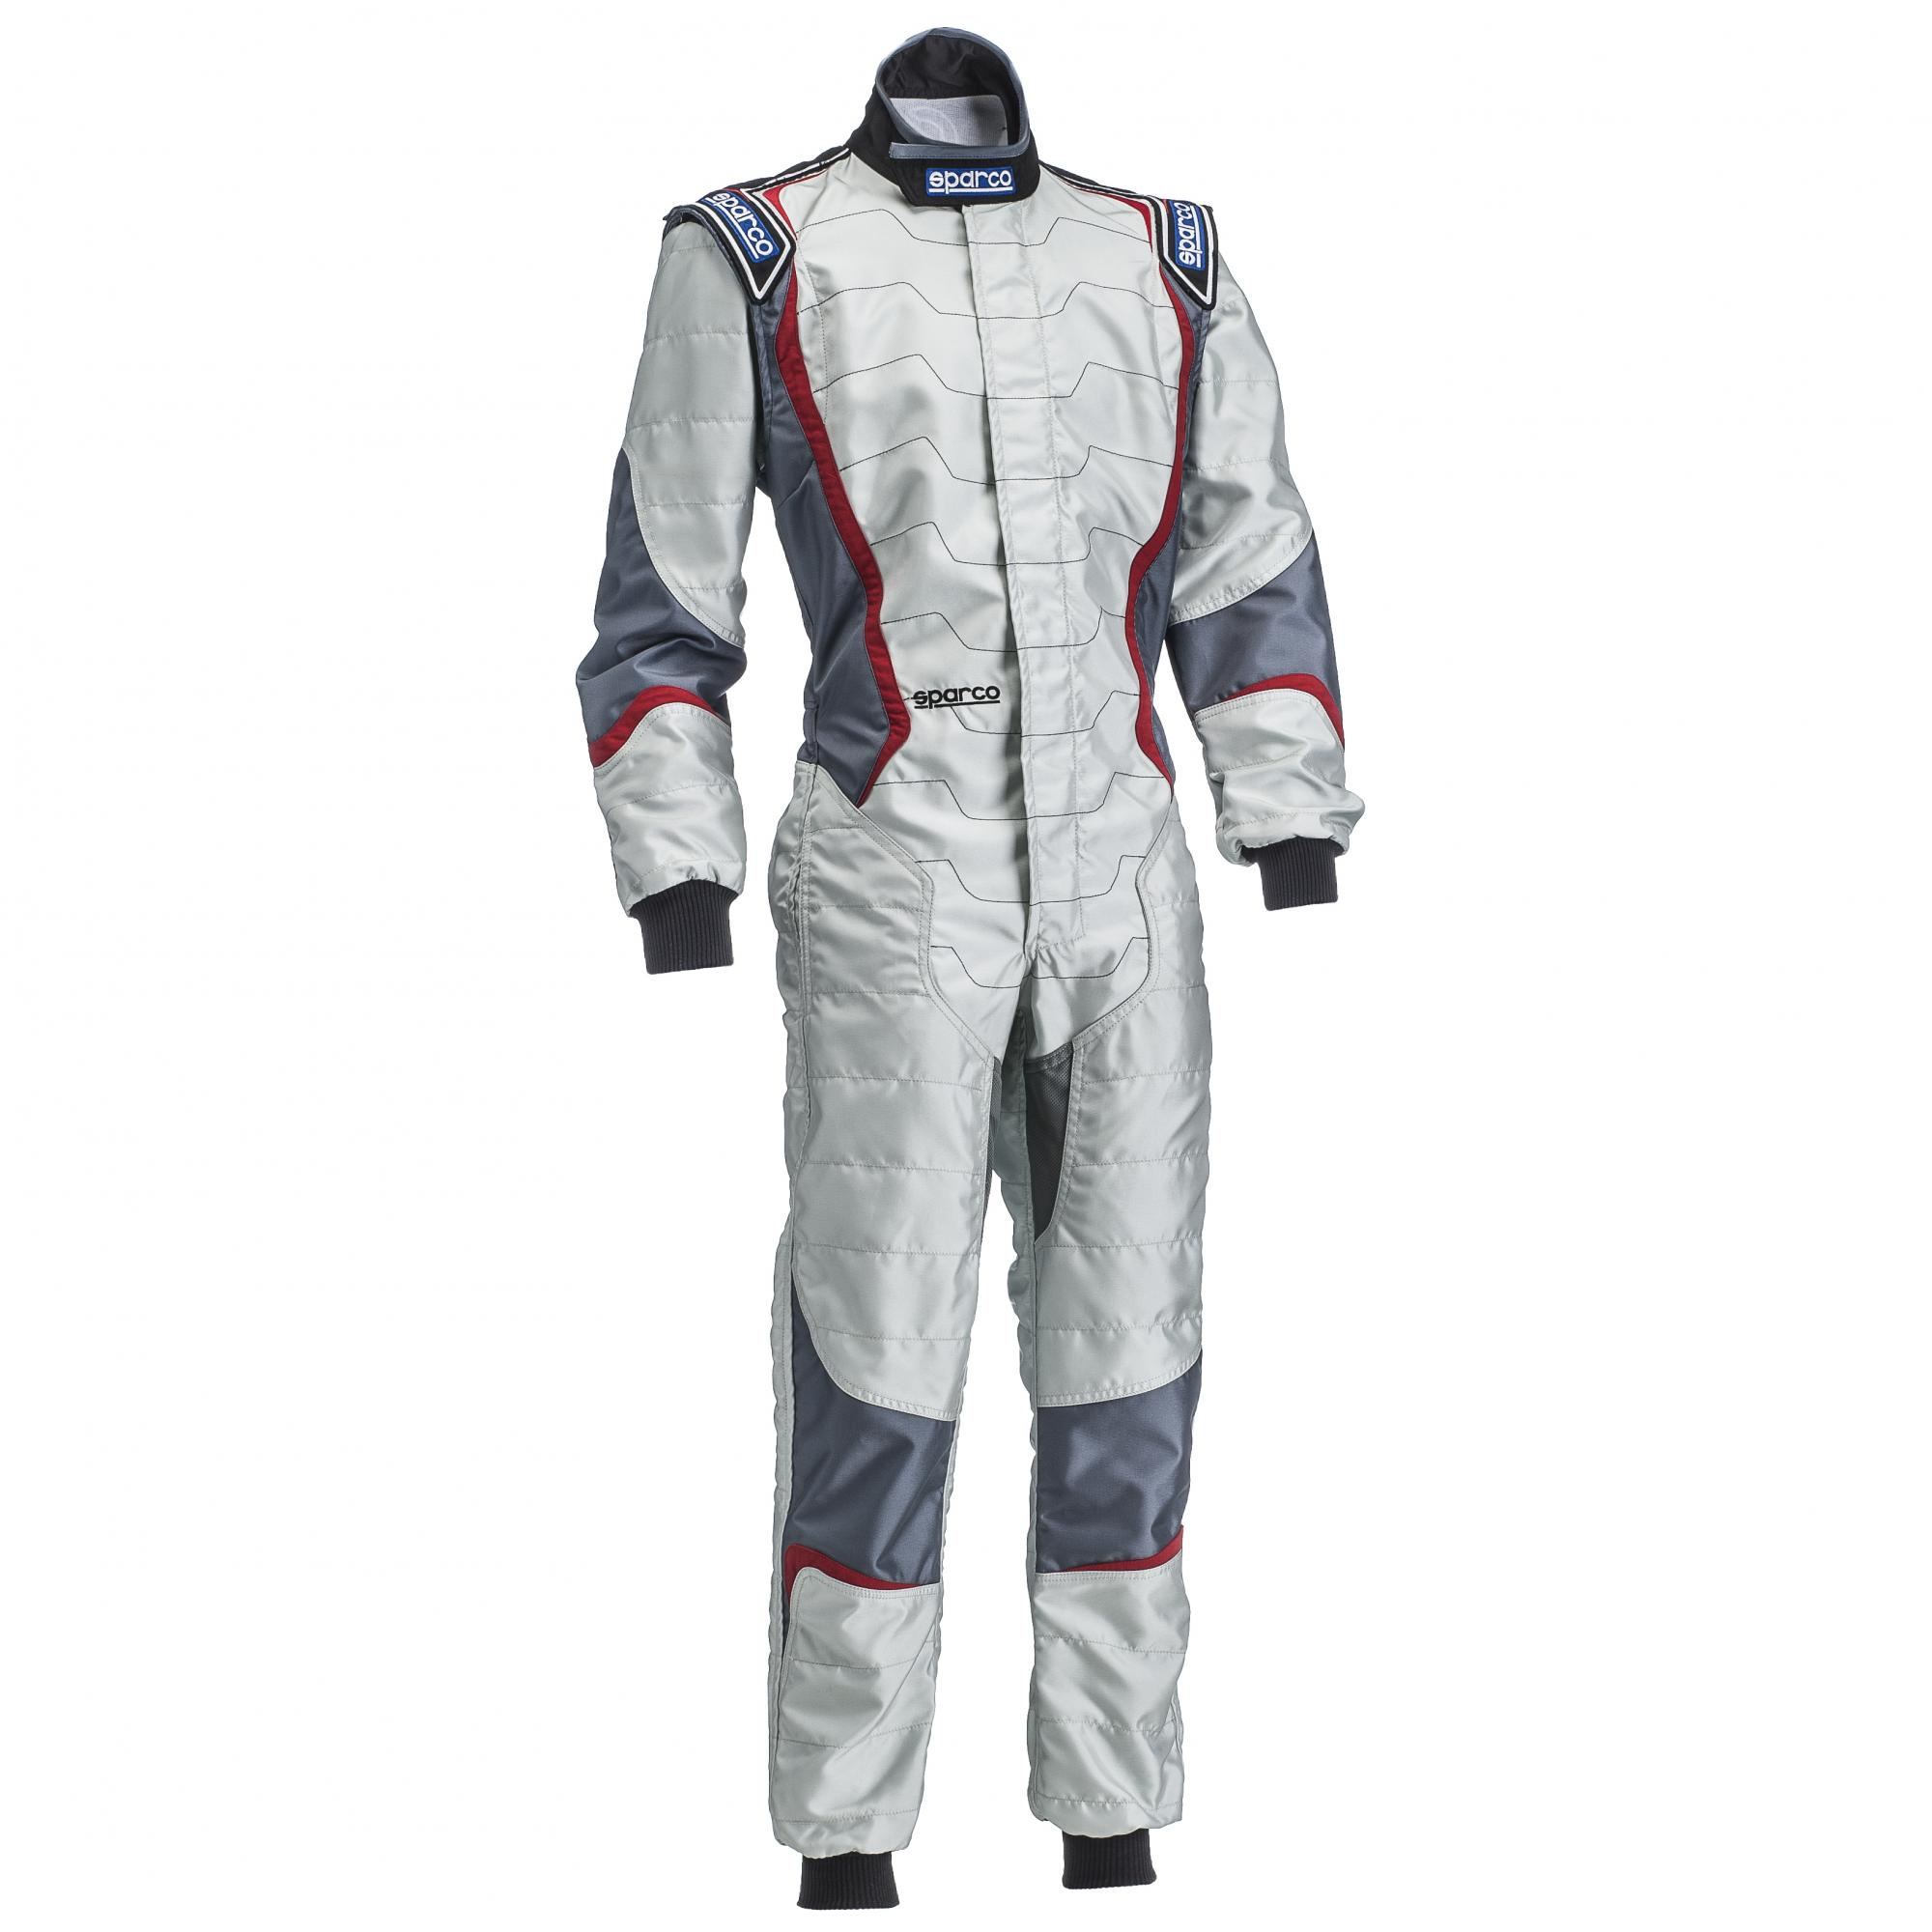 Sparco Racing Suits Size Chart Sparco Suit Sizing Chart